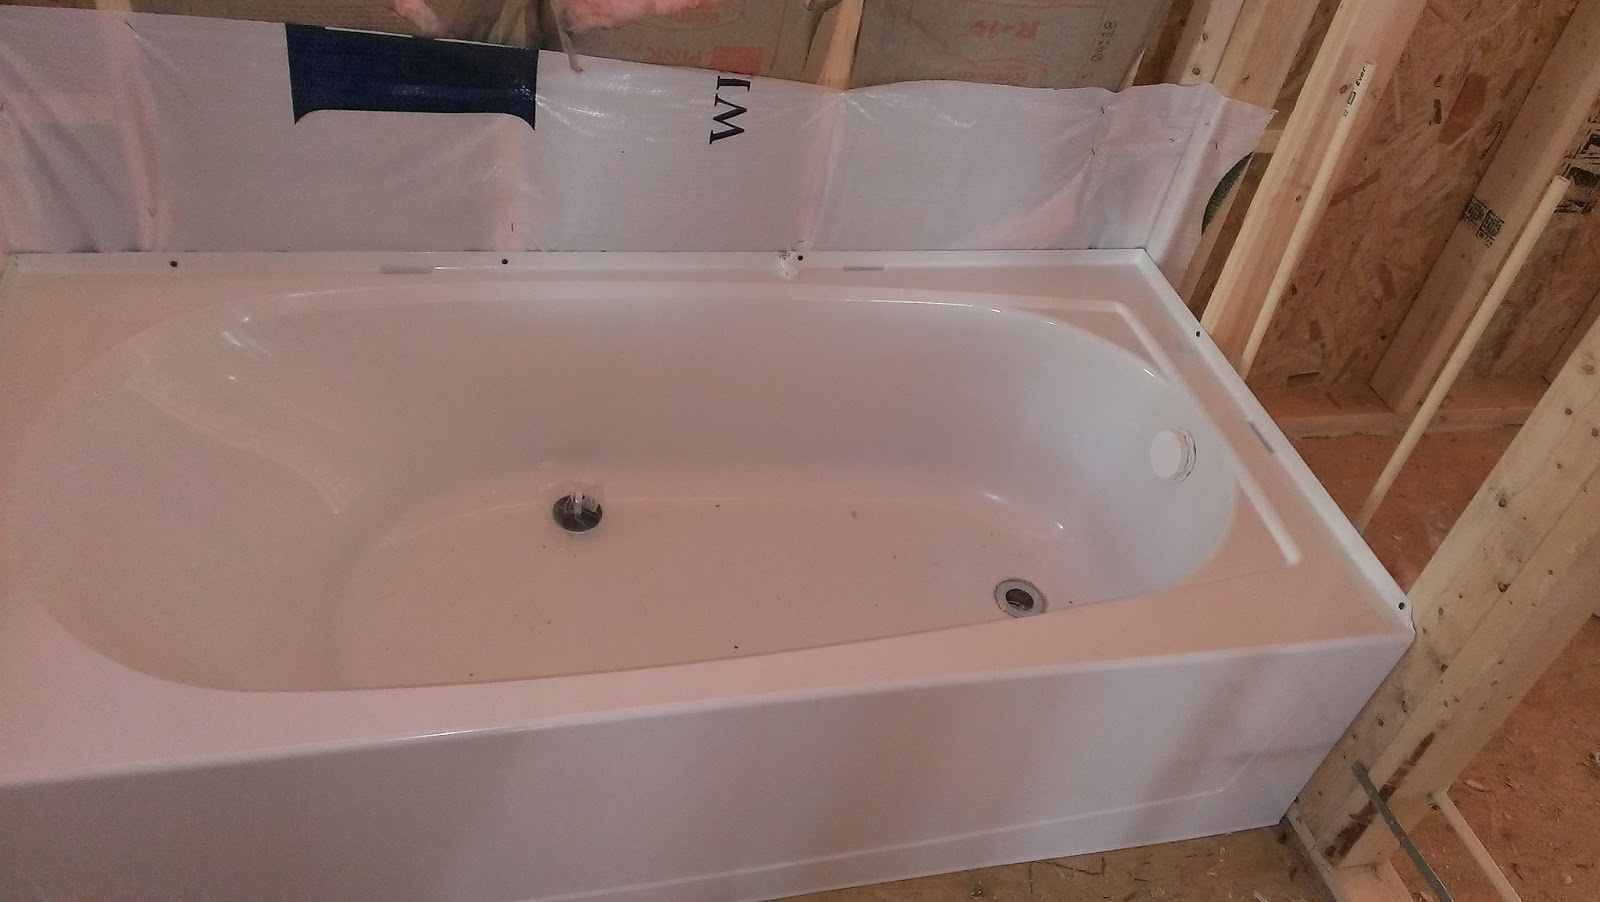 From The Ground Up: New Ryan Homes Master Tub